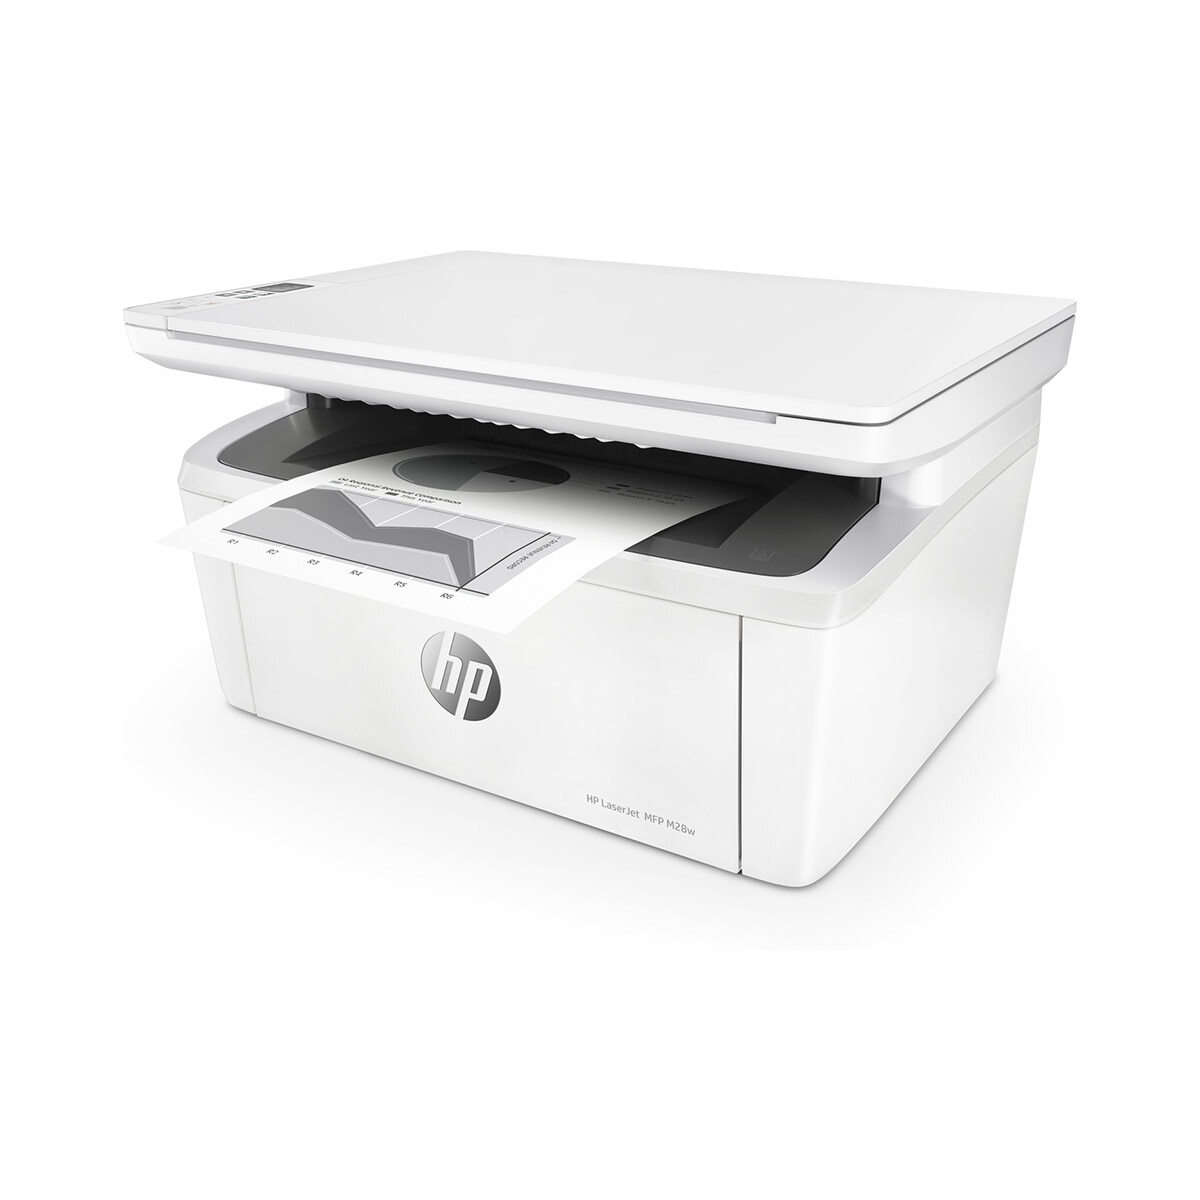 HP LASERJET PRO MFP M28W PRINTER PRINT, SCAN, COPY, WIRELESS 3 Years Onsite Warranty with 1-to-1 Unit exchange **NEED TO ONLINE REGISTER**